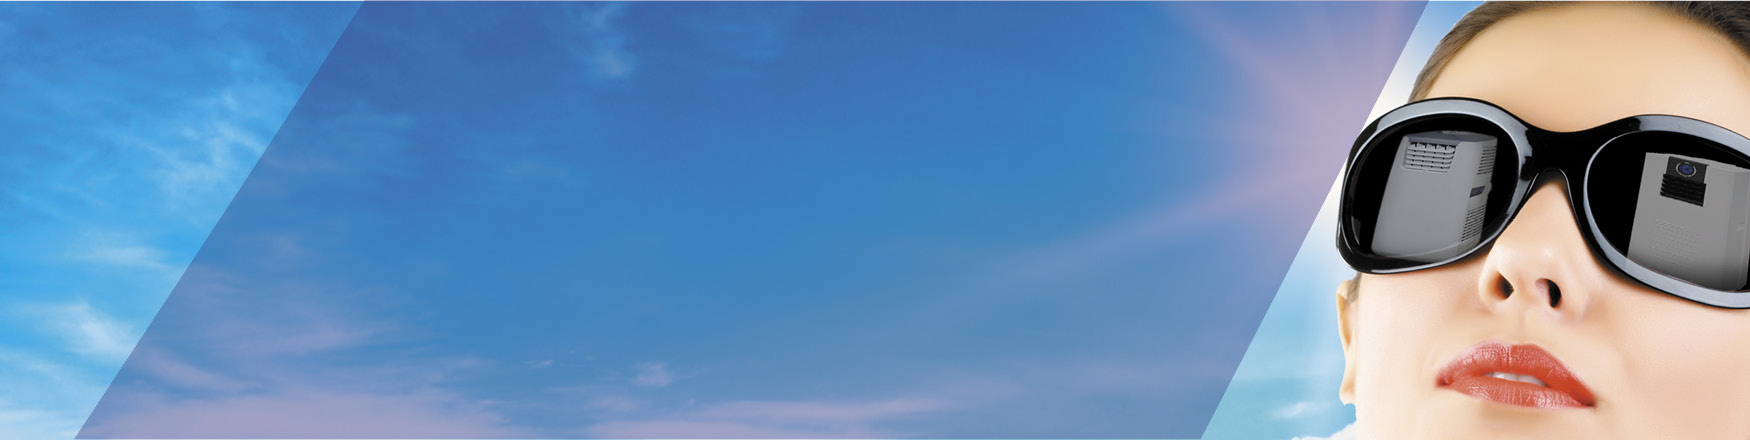 Large Plain Banners - 1750x440px_Cooling.jpg